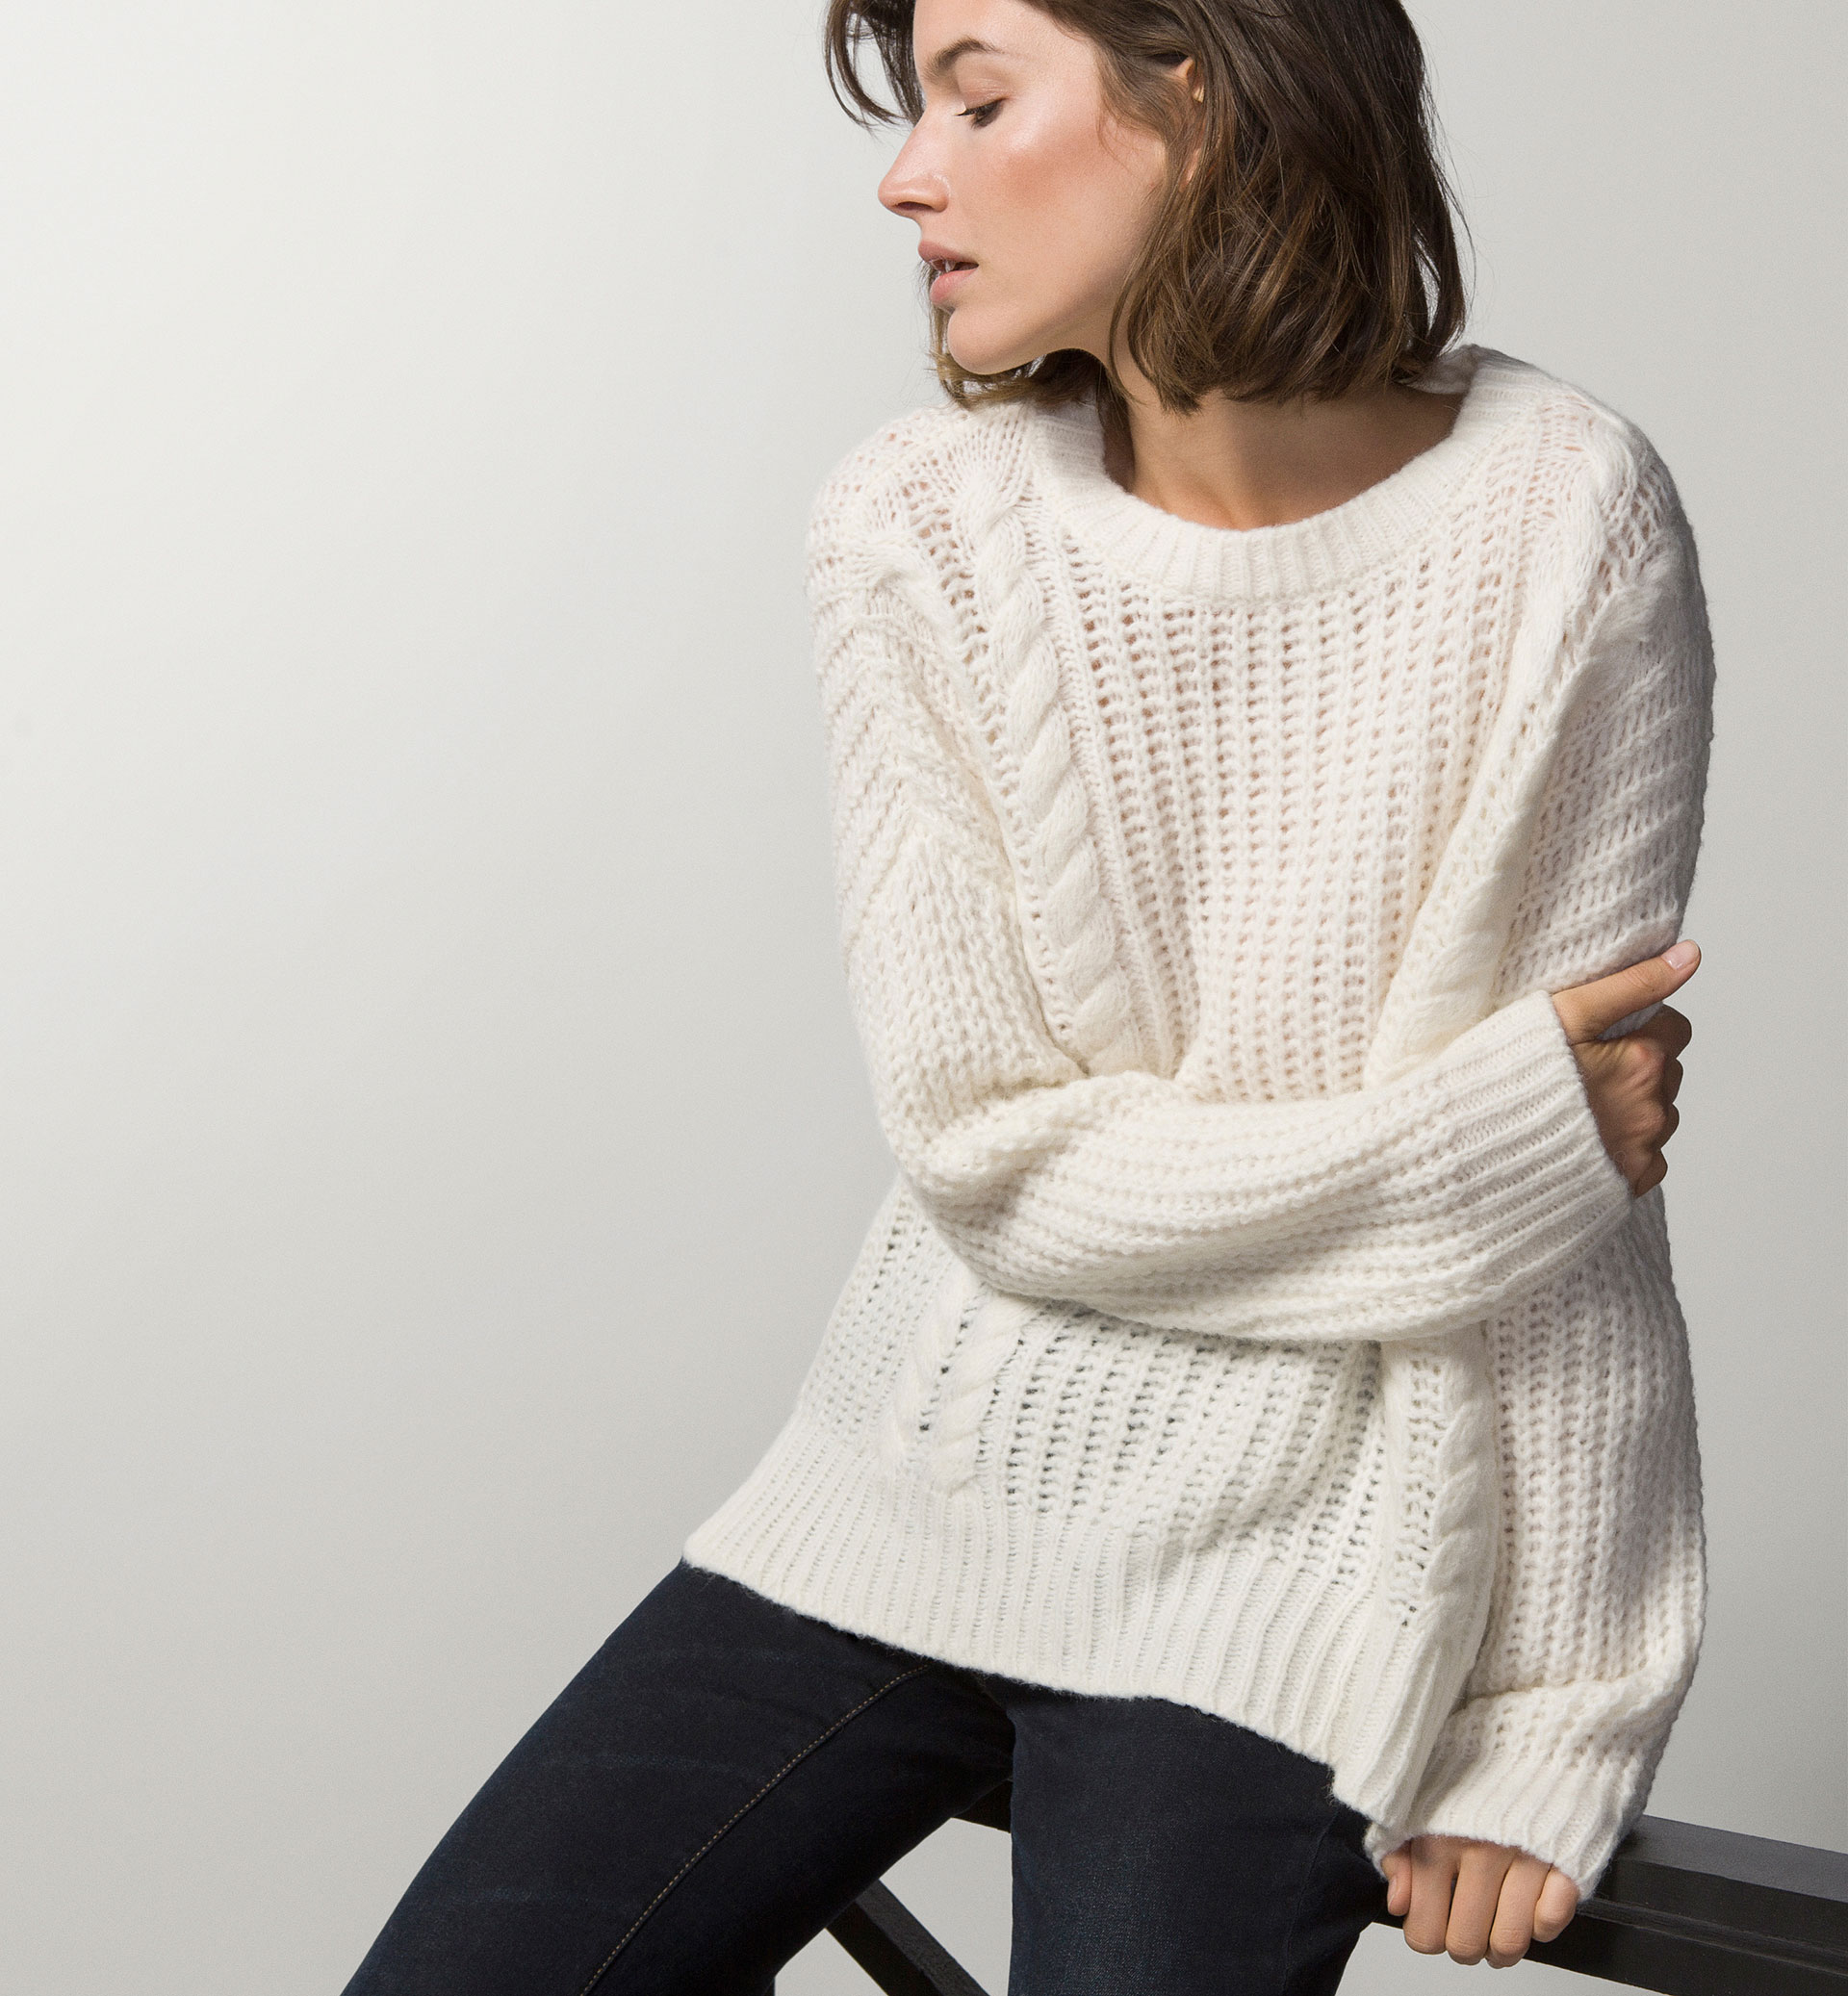 Free People Cable Knit Sweater Images - Craft Design Ideas